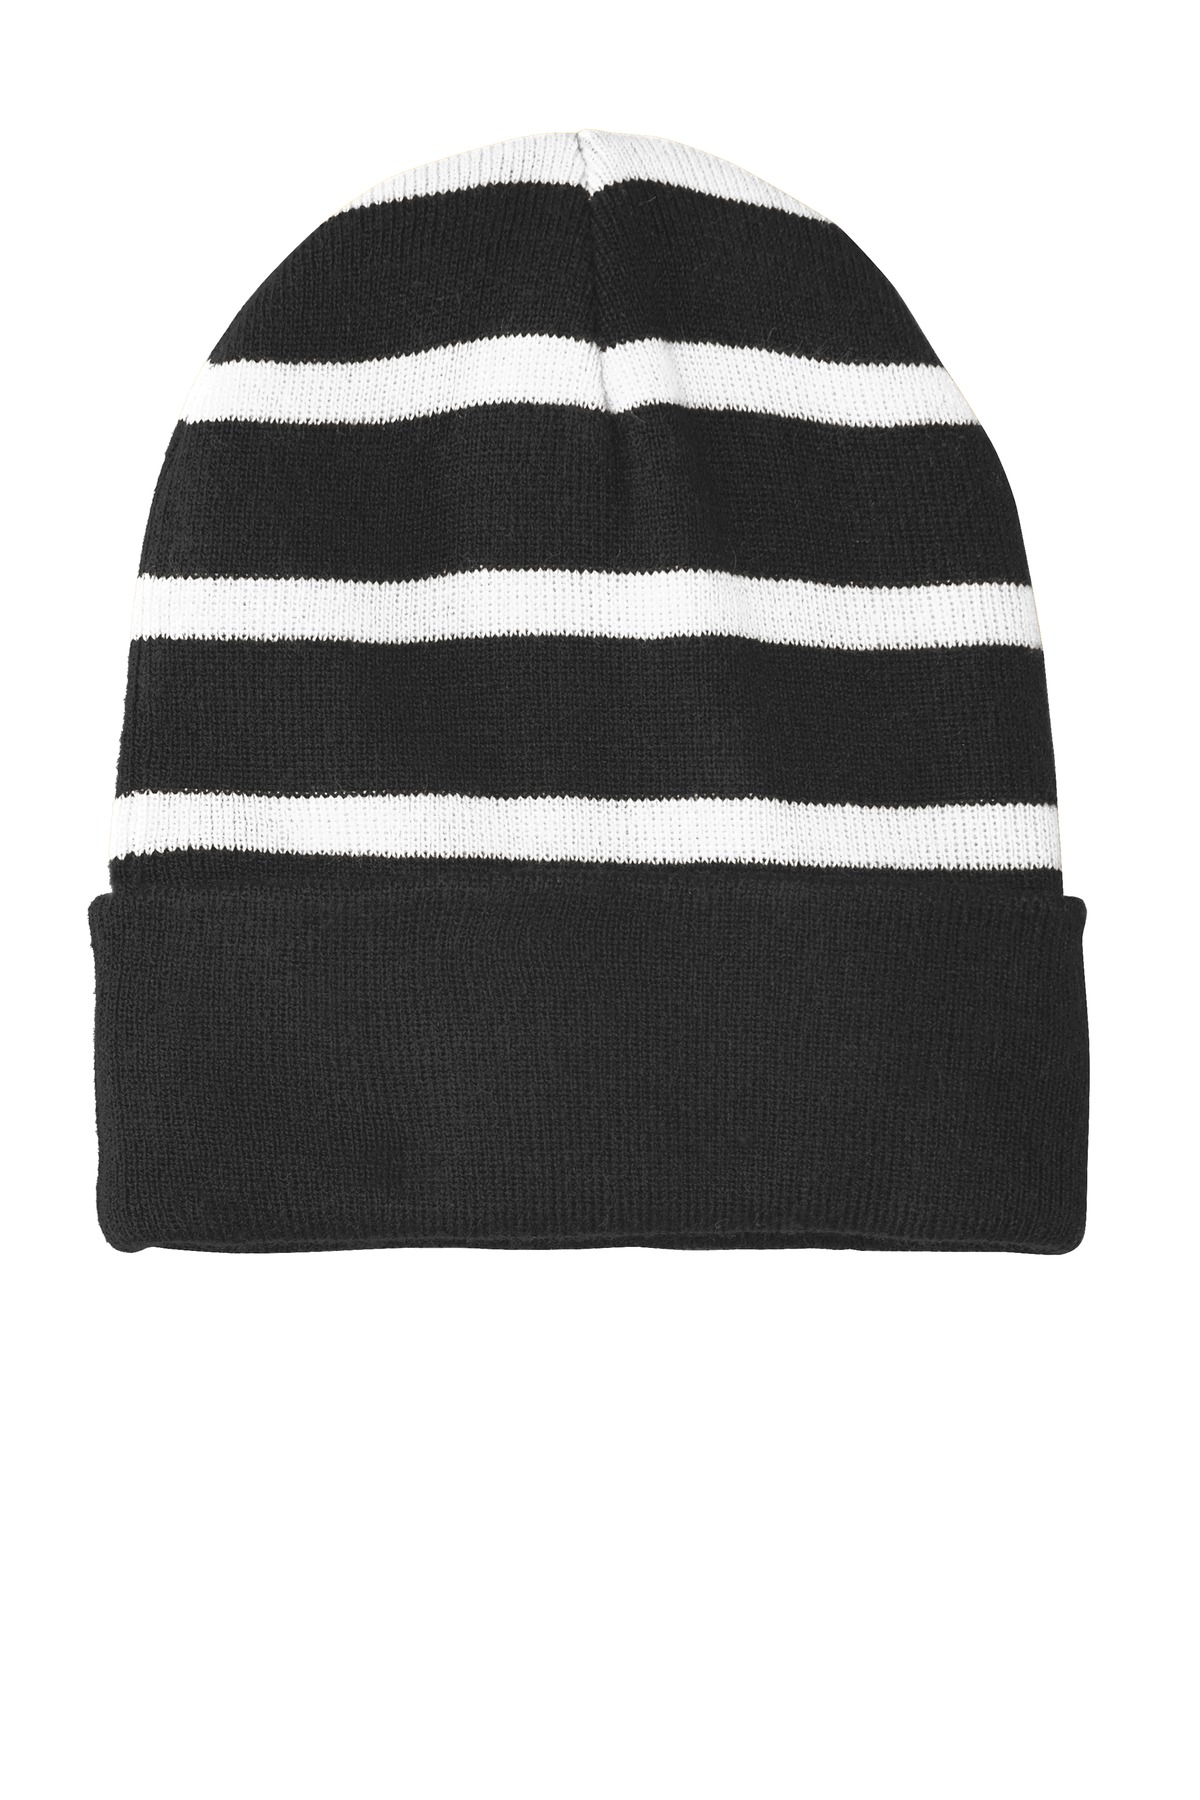 Sport-Tek ®  Striped Beanie with Solid Band. STC31 - Black/ White